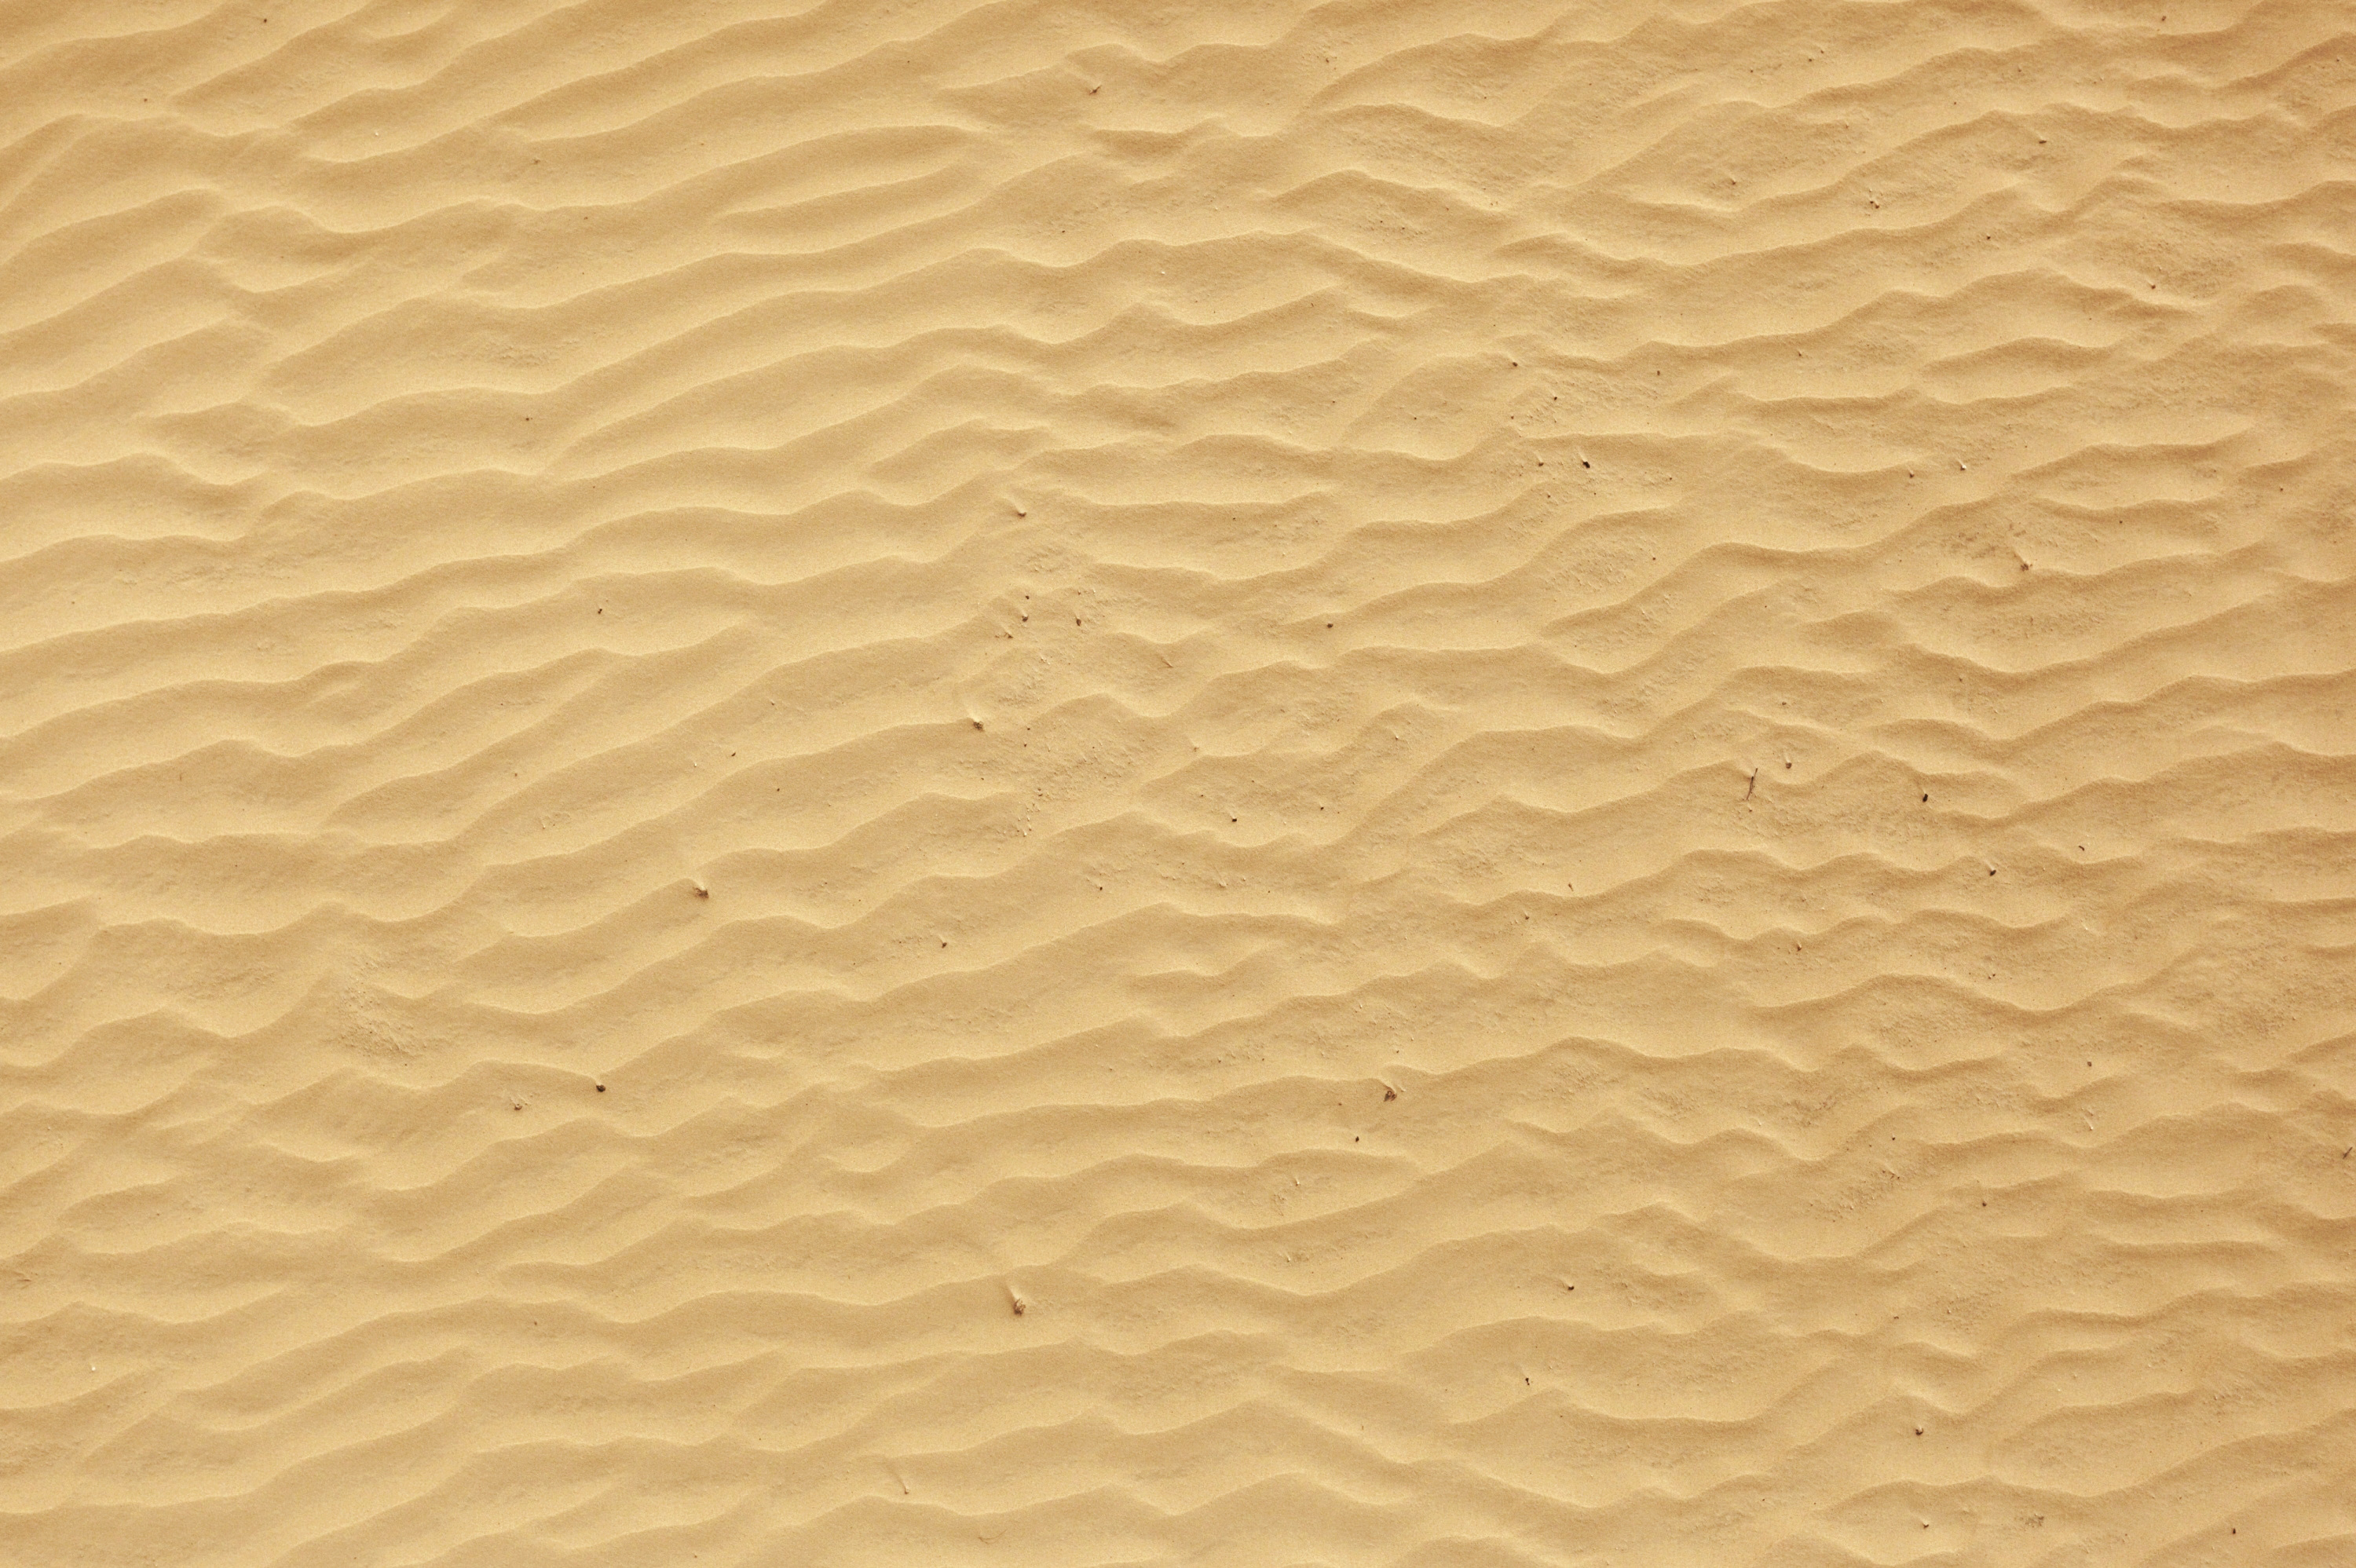 Background Beach Sand | Gallery Yopriceville - High-Quality Images ...